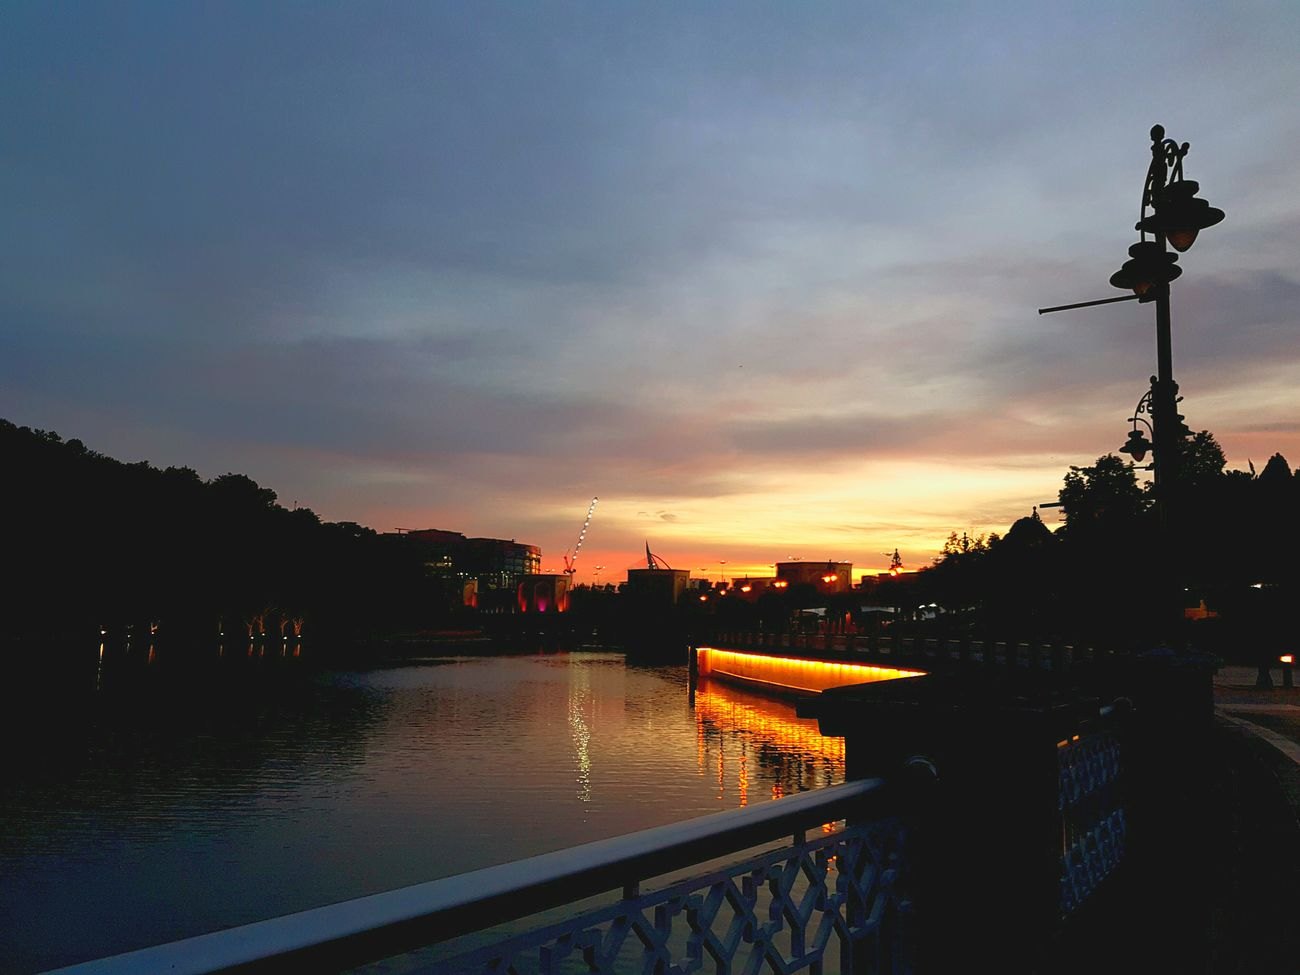 A little getaway like this would be at the top of list right now Sunset River City Water Waterfront Bridge Outdoors Nature Photography Dusky Sky